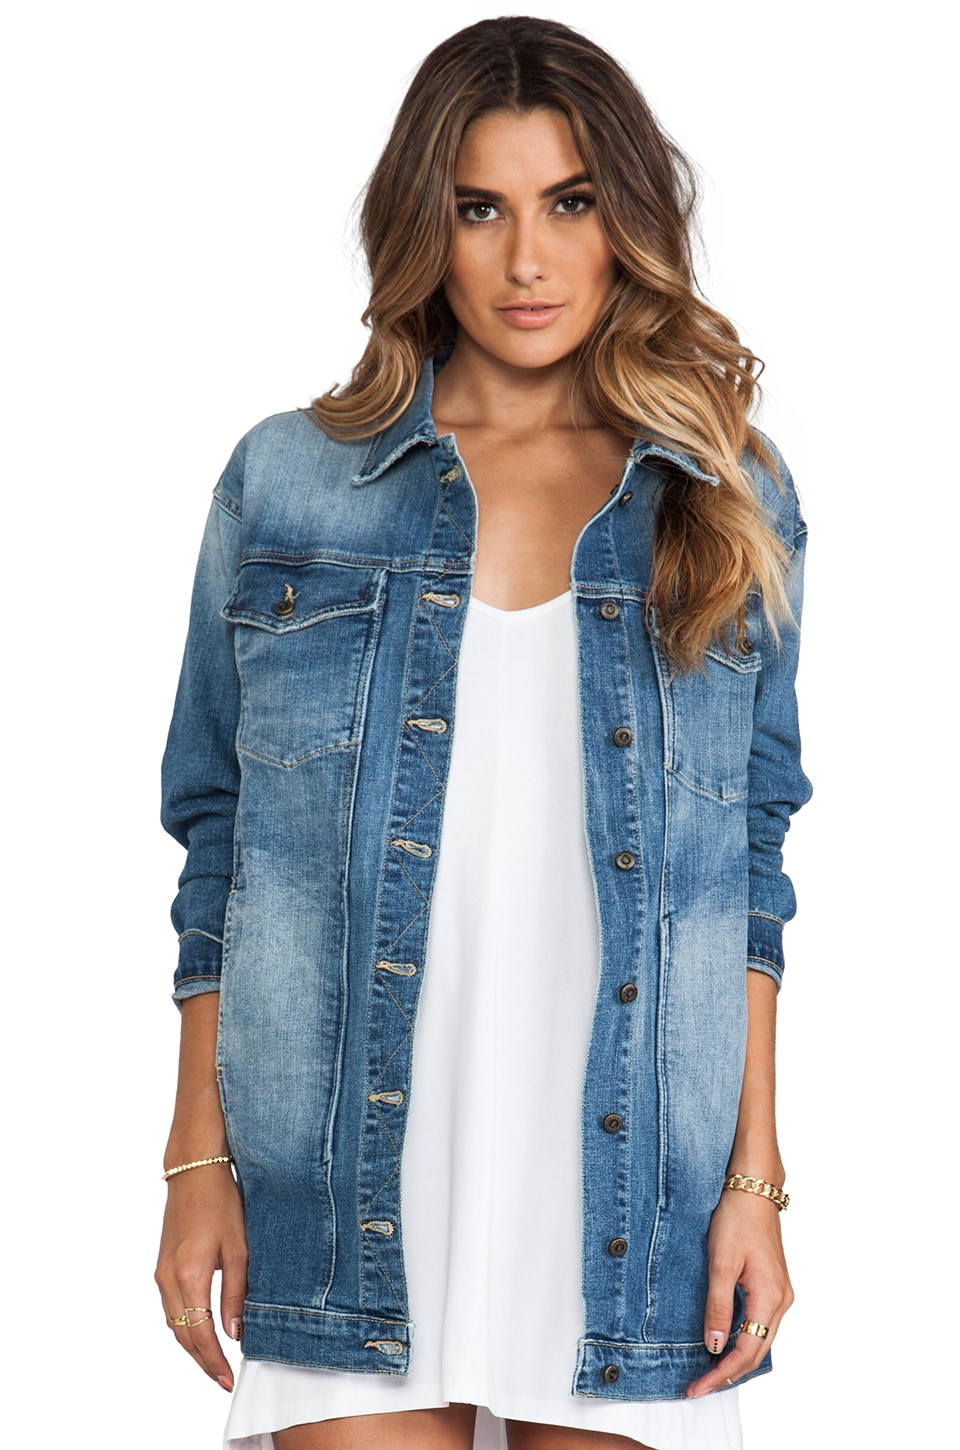 Joe's Jeans Dress Denim Jacket in Jaide